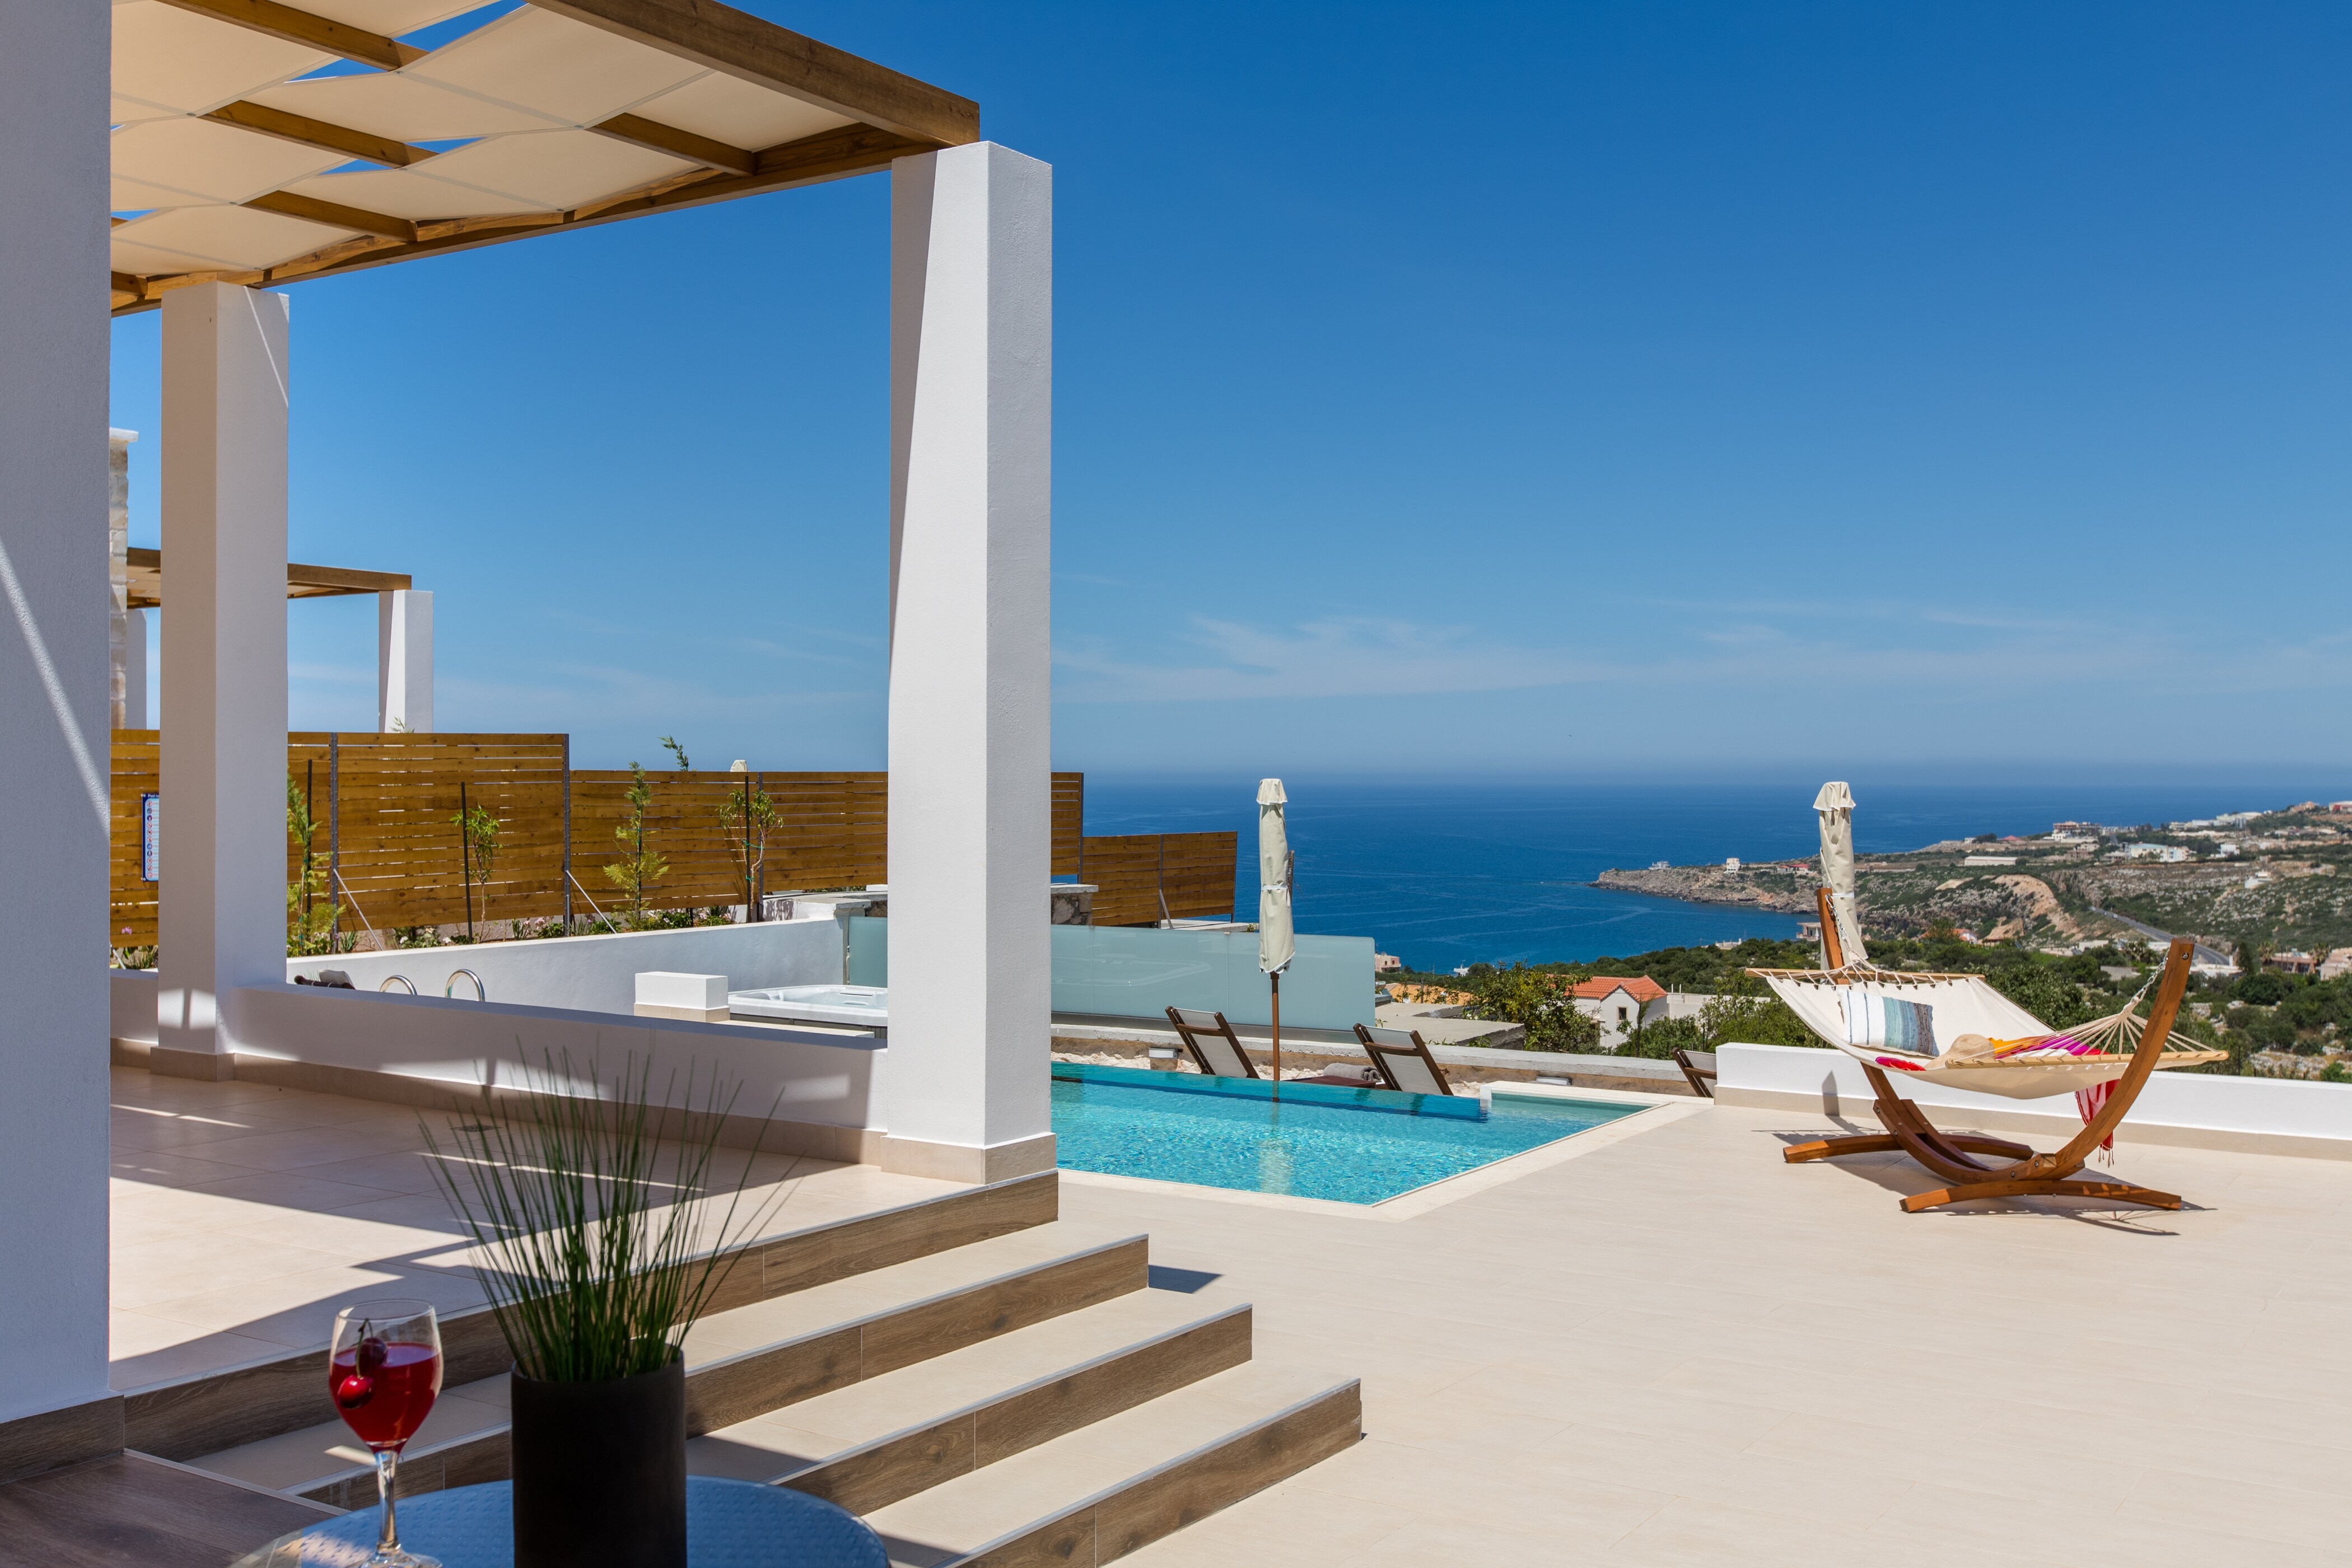 Remarkable Ocean View Villa with Private Heated Pool and Jacuzzi